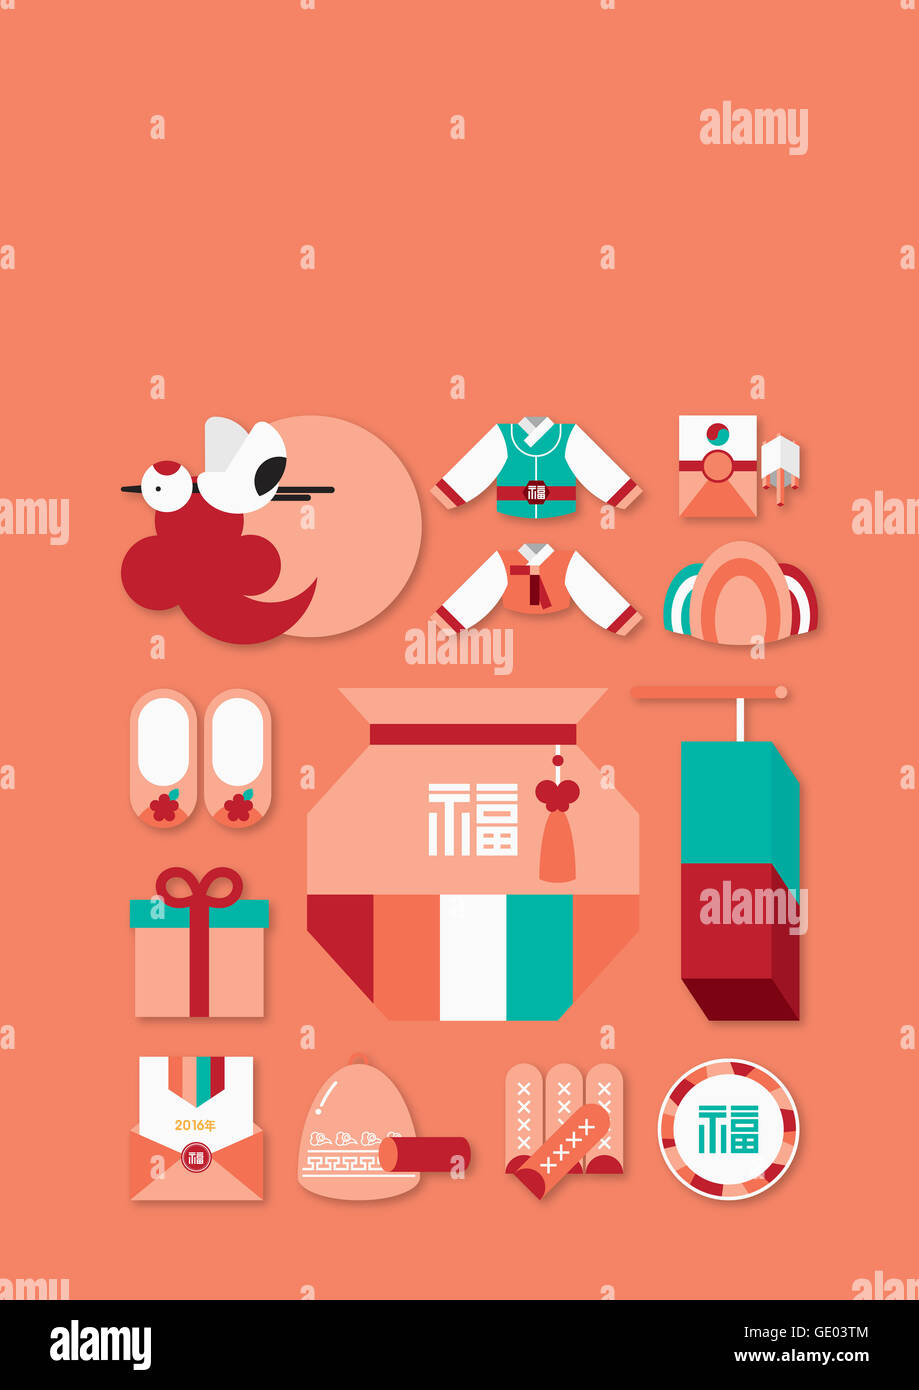 set of various icons related to traditional korean new year s day stock photo alamy alamy